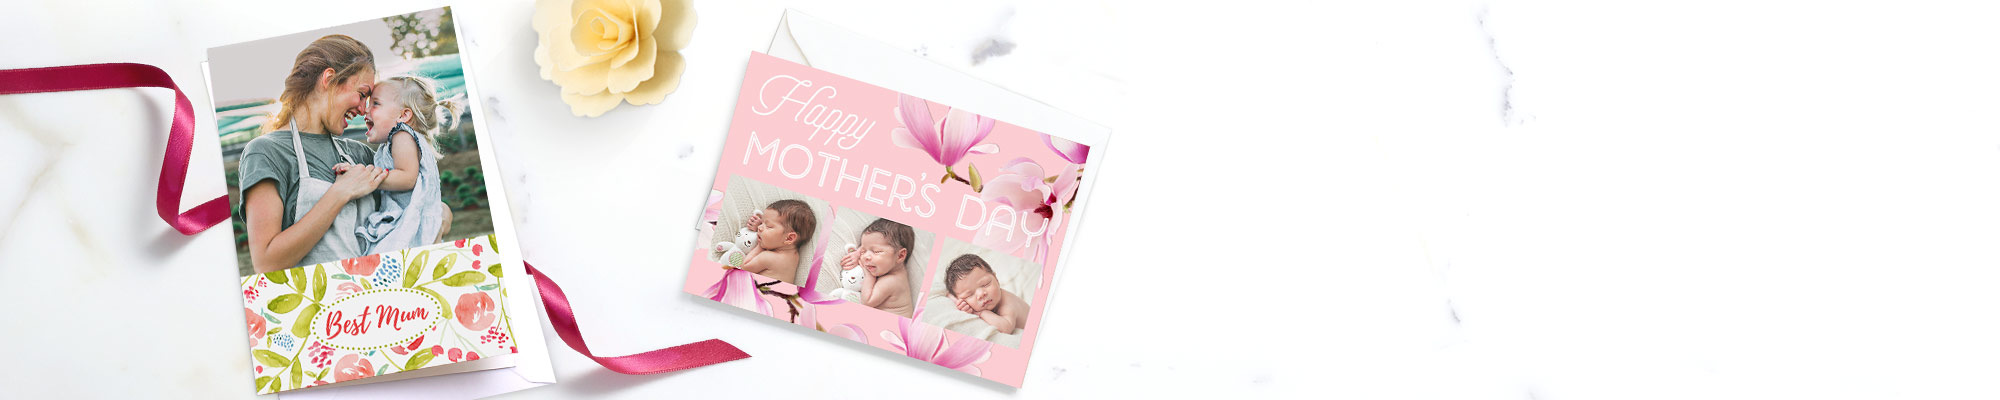 Photo Cards : Snapfish cards are a beautiful way to share your happiness espeically for Mother's Day.